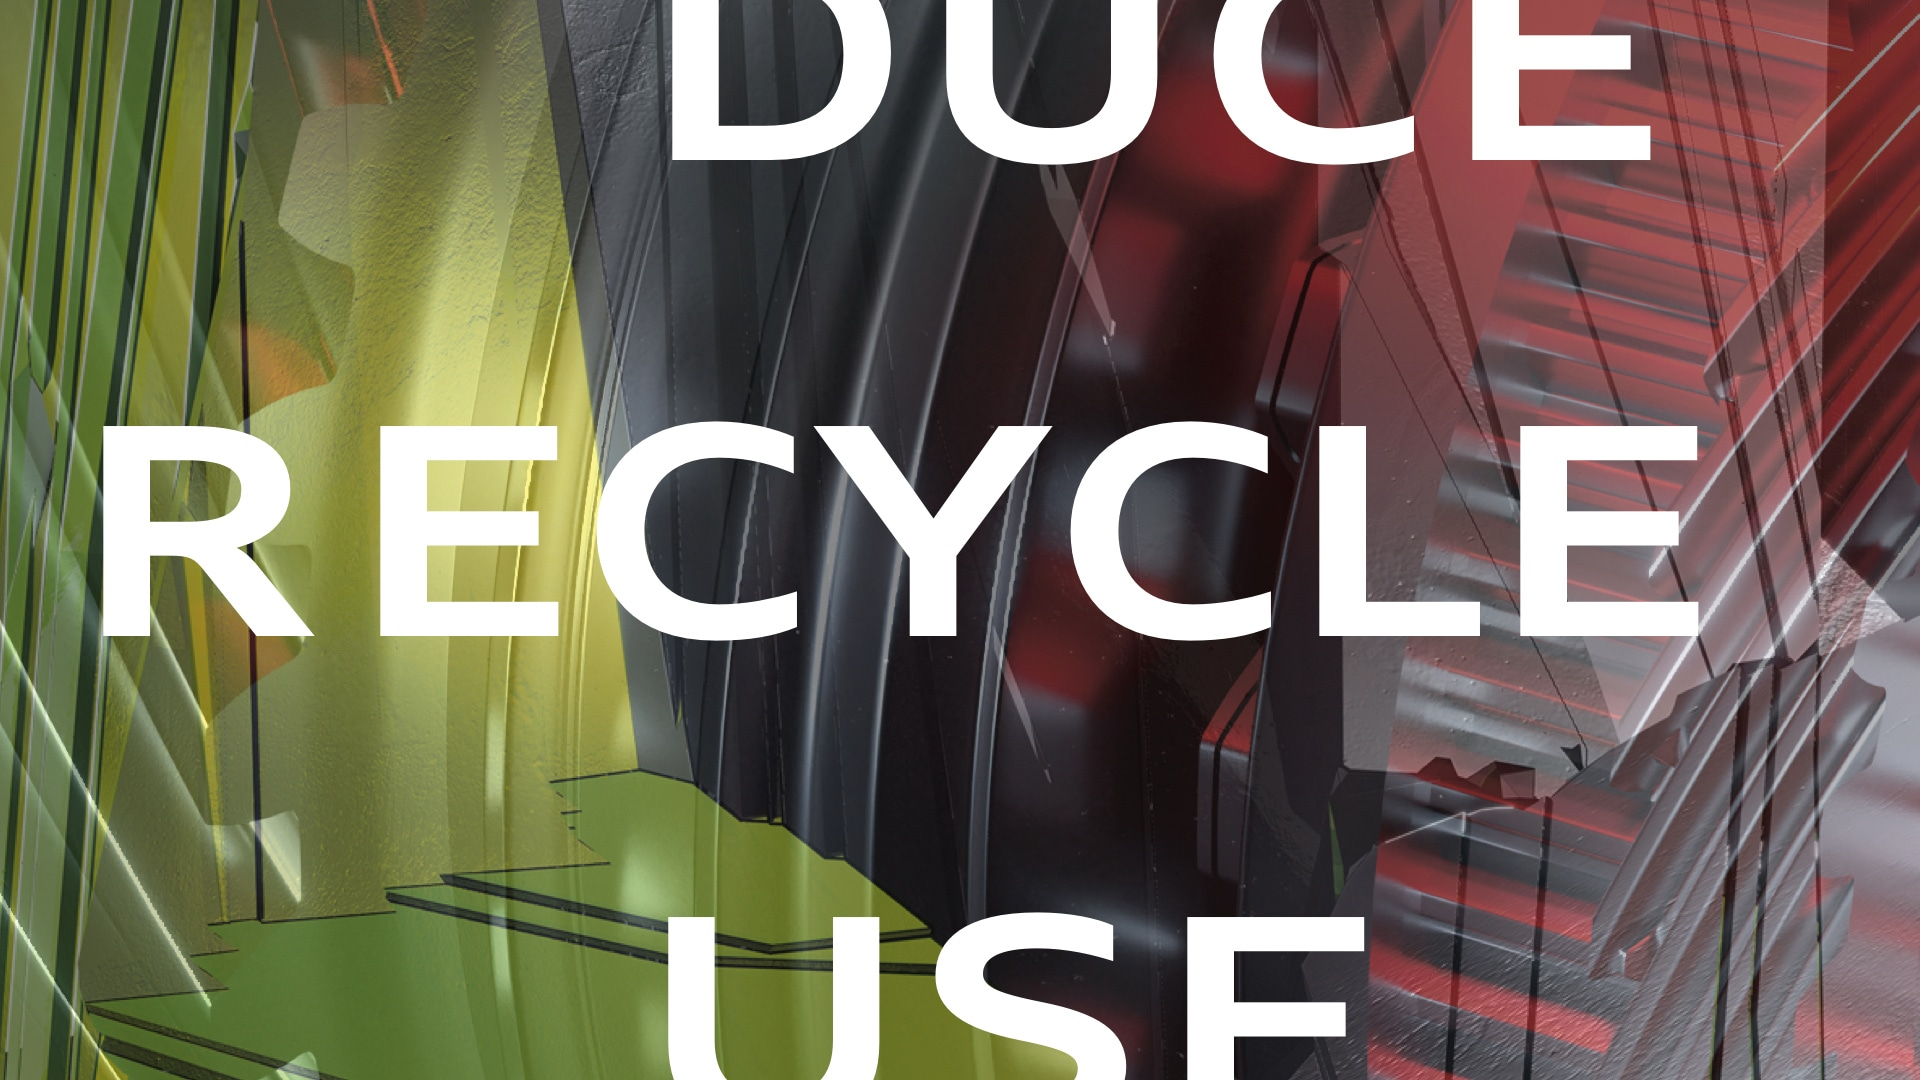 Circular economy: reduce, reuse, recycle.